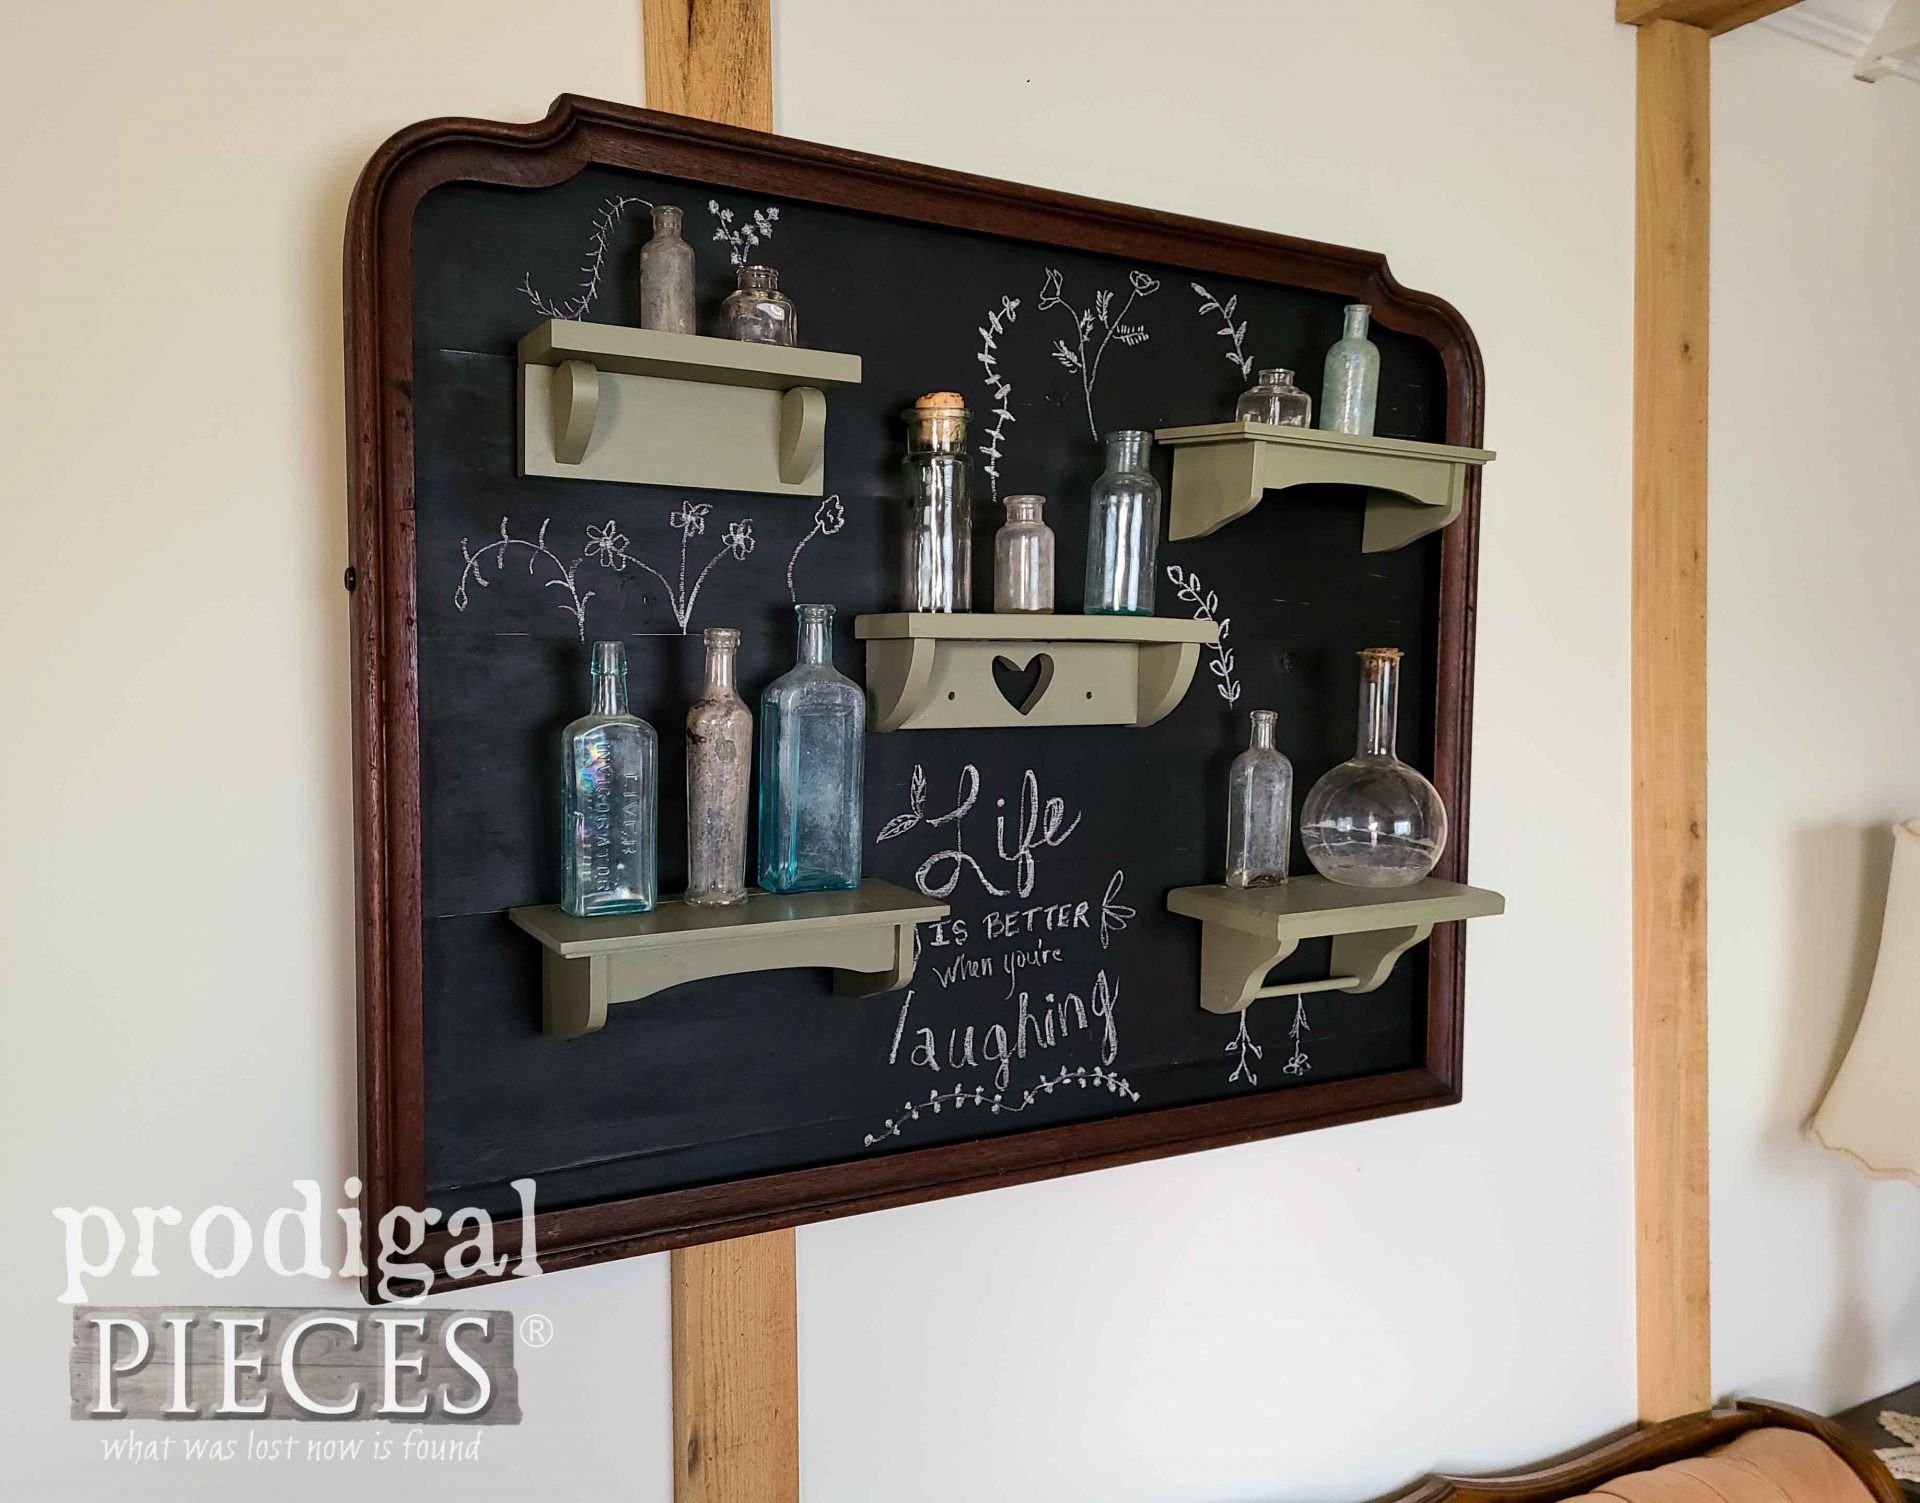 Farmhouse Style Chalkboard Wall Art from Upcycled Mirror Frame by Larissa of Prodigal Pieces | prodigalpieces.com #prodigalpieces #farmhouse #home #homedecor